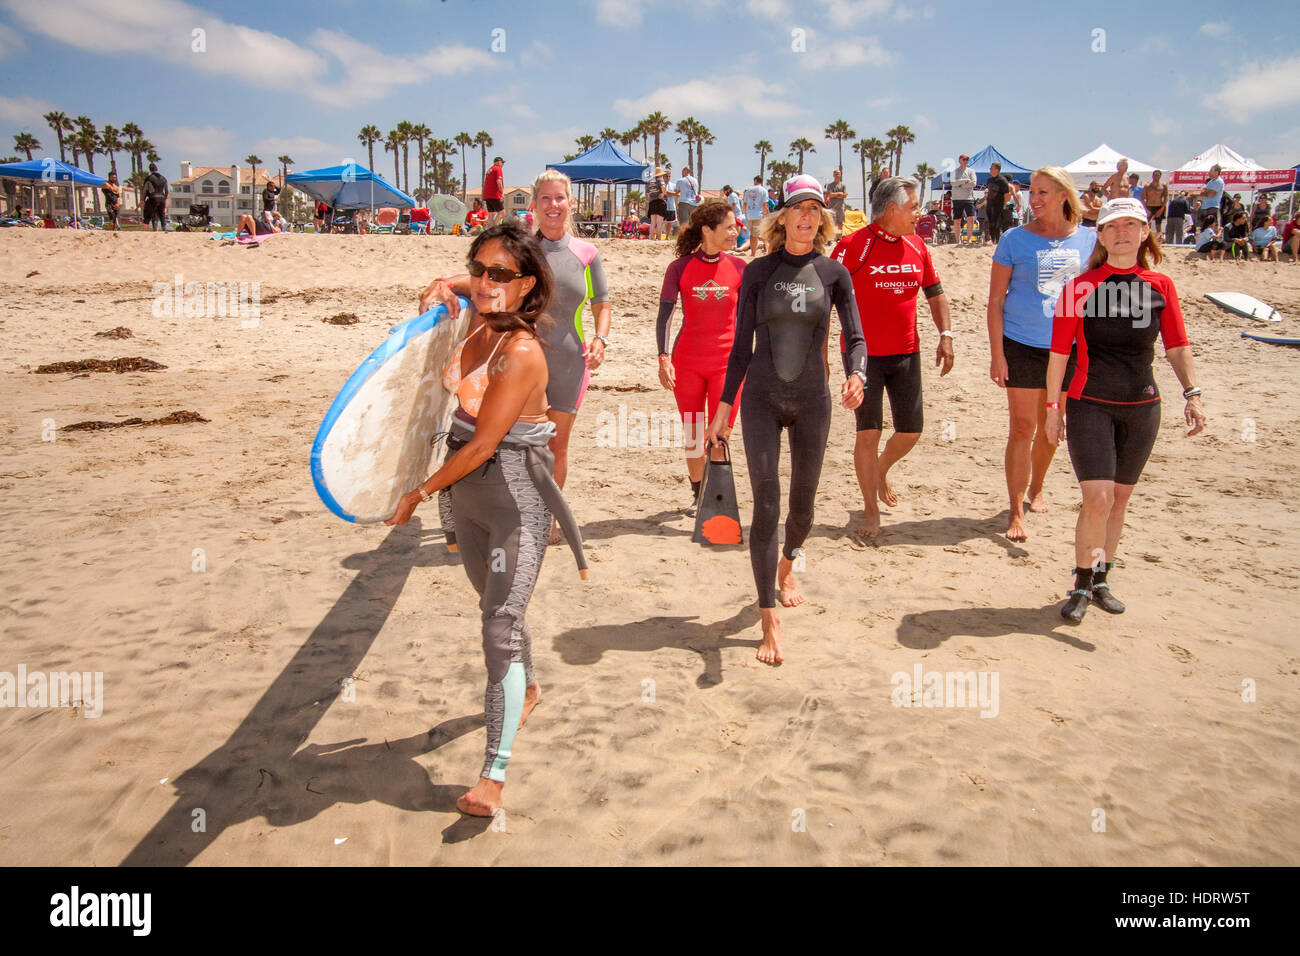 In thanks for his military service, a veteran (center right) receives a free surfing lesson from a female instructor - Stock Image